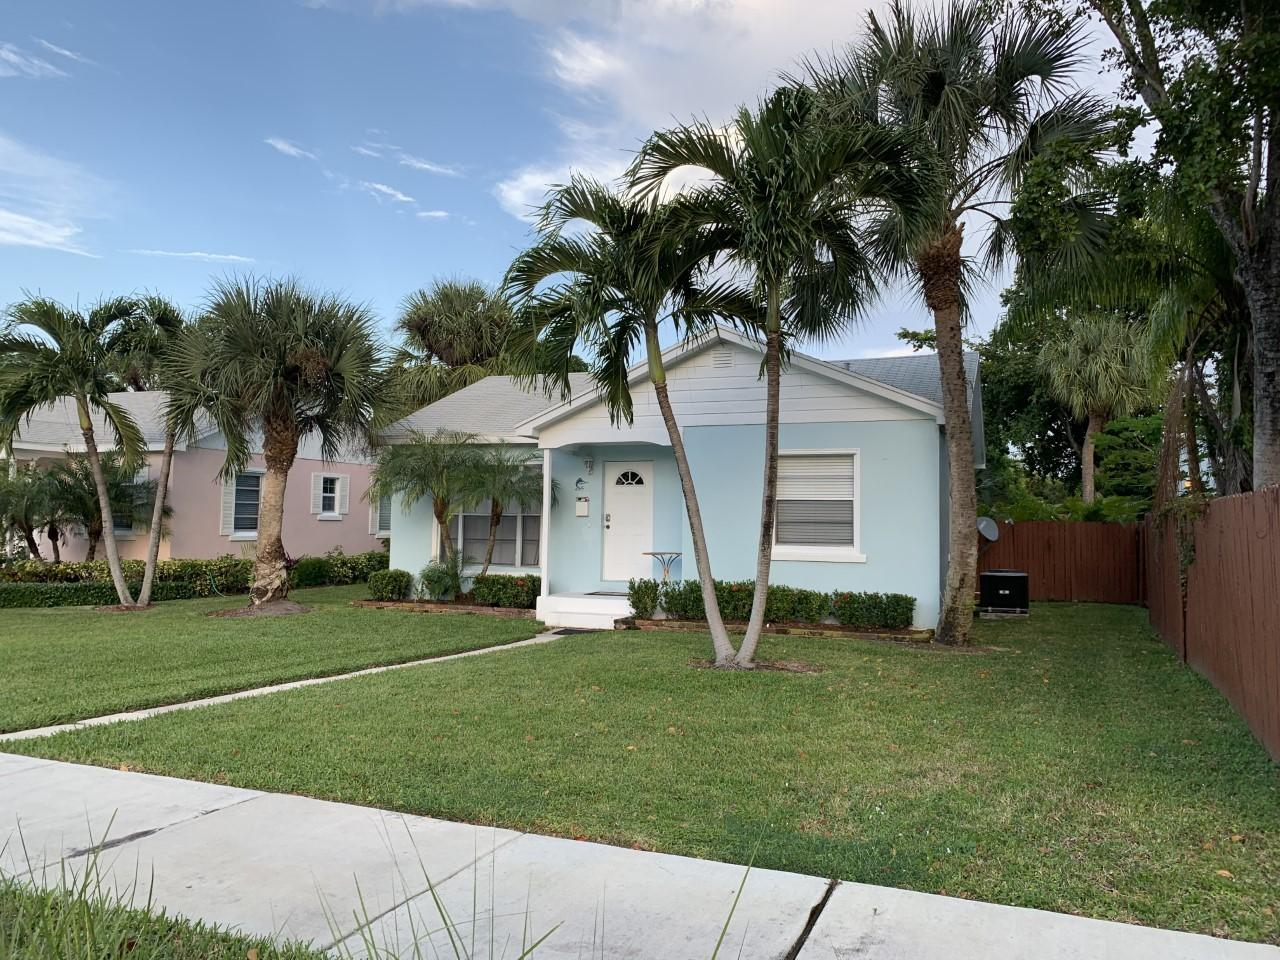 Home for sale in FREY SOPHIA ADD TO DELRAY IN Delray Beach Florida